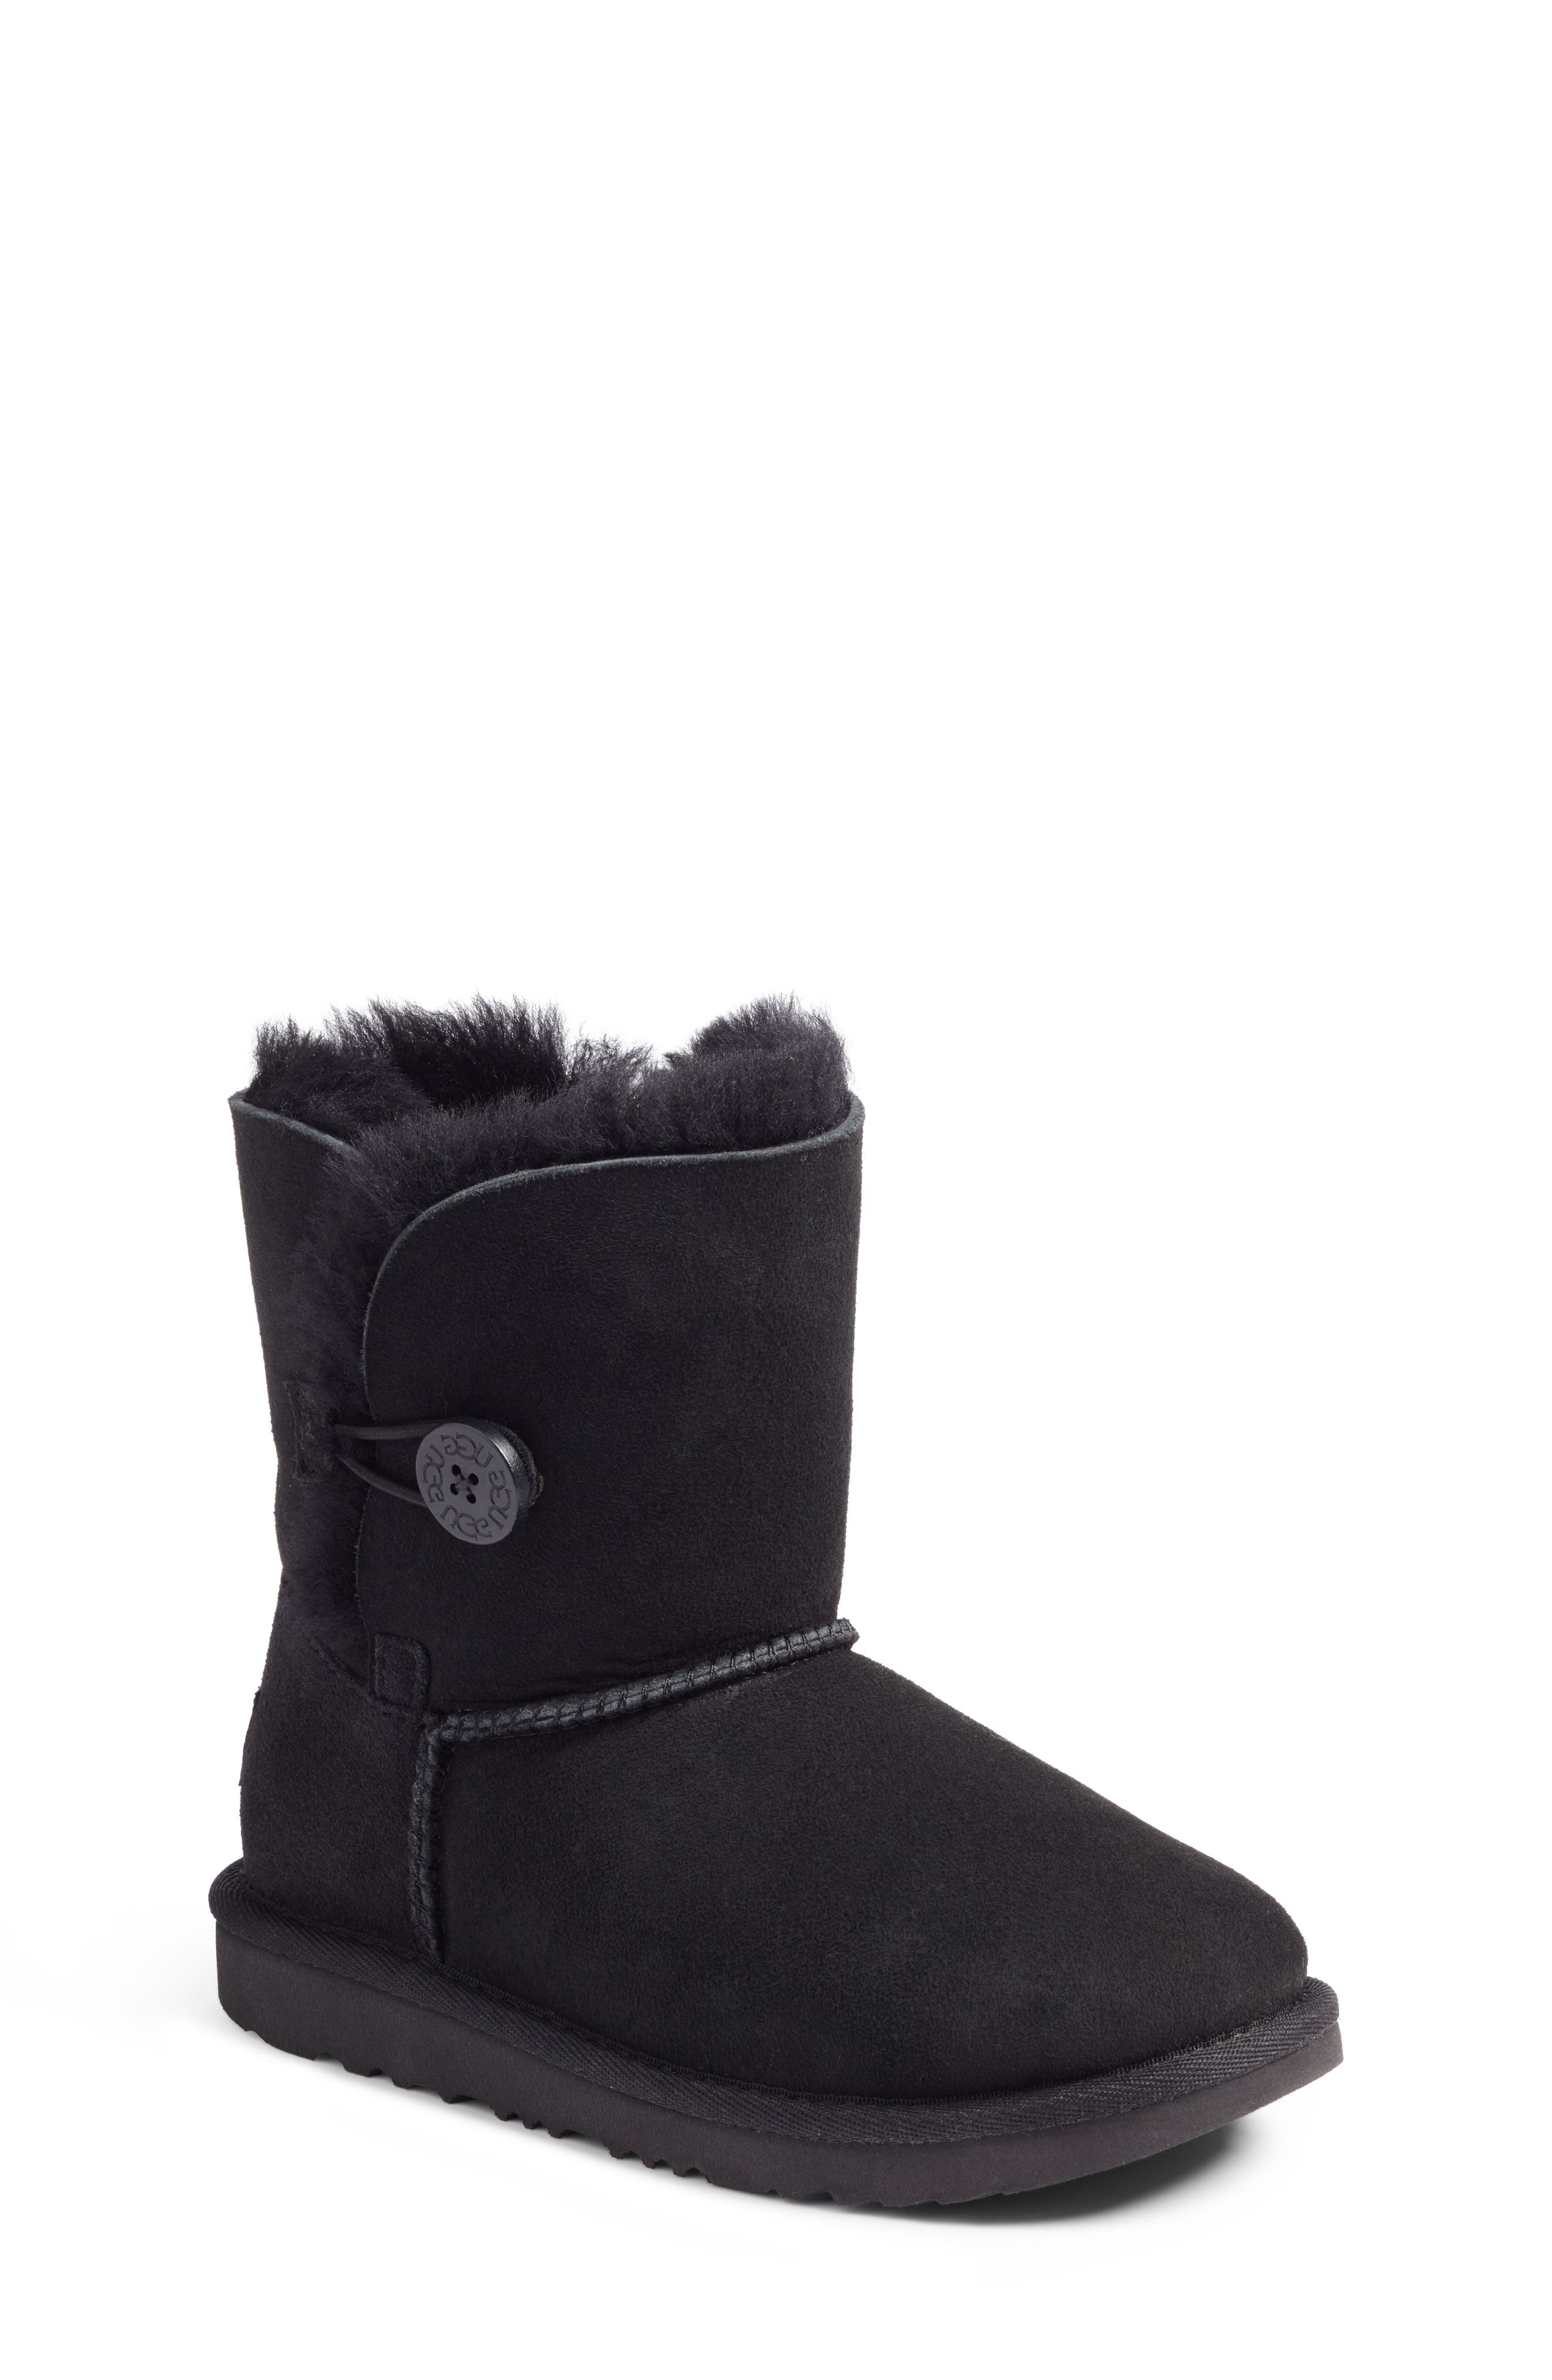 UGG® Bailey Button II Water Resistant Genuine Shearling Boot (Walker, Toddler, Little Kid & Big Kid)